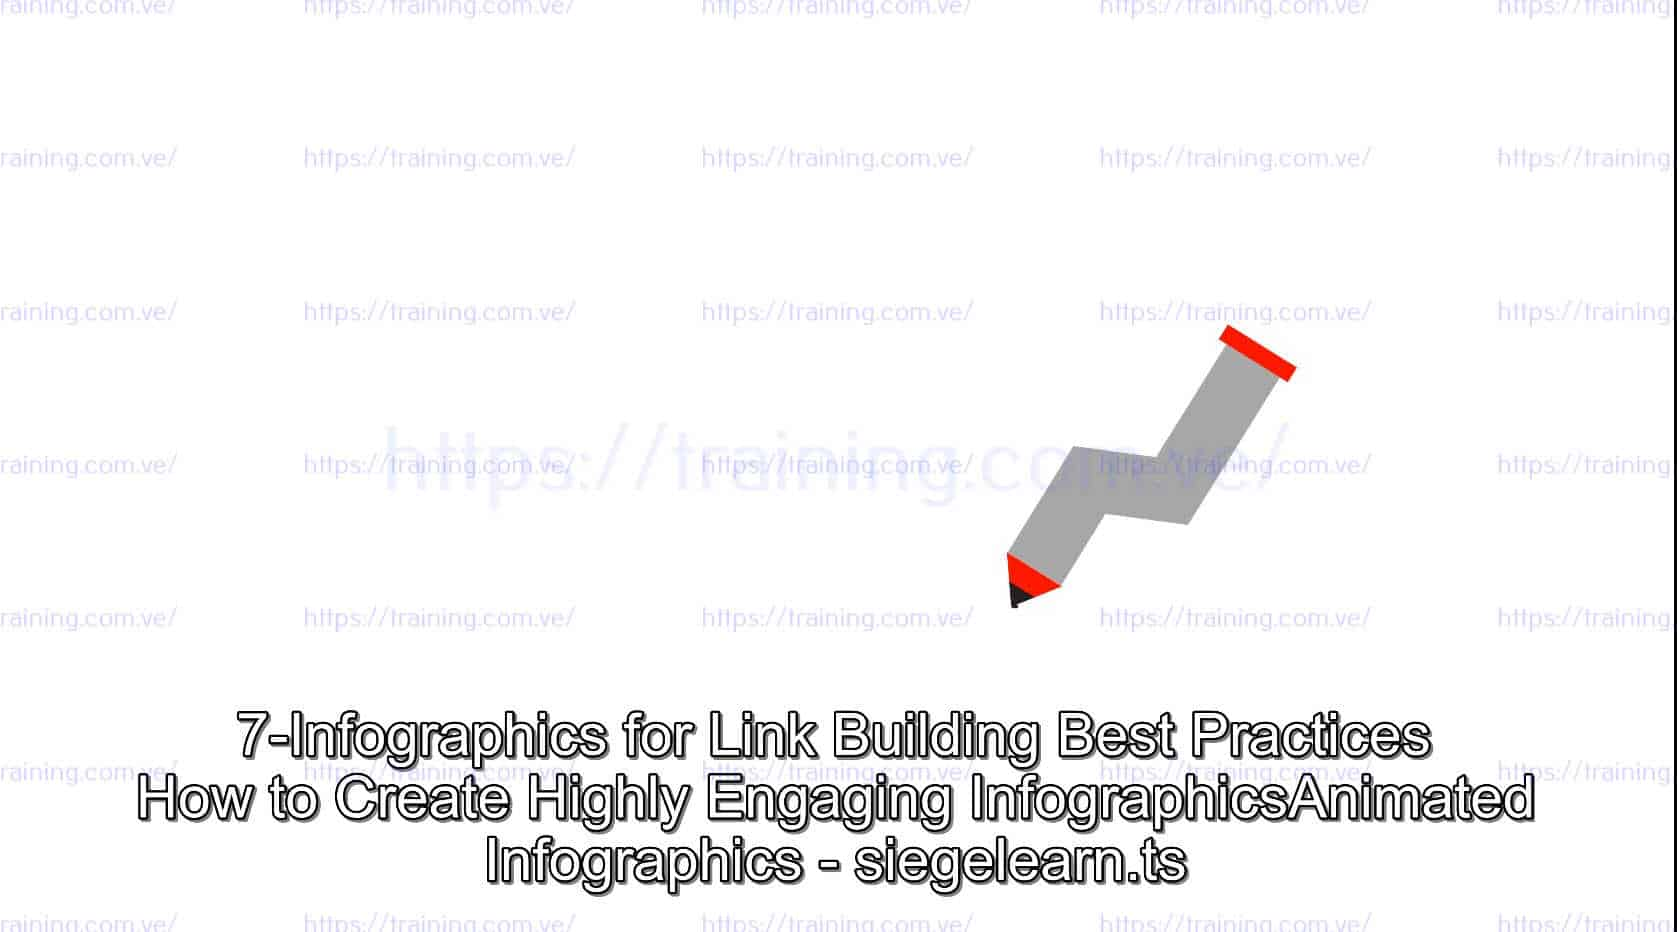 SiegeLearn Content Marketing Course Discount